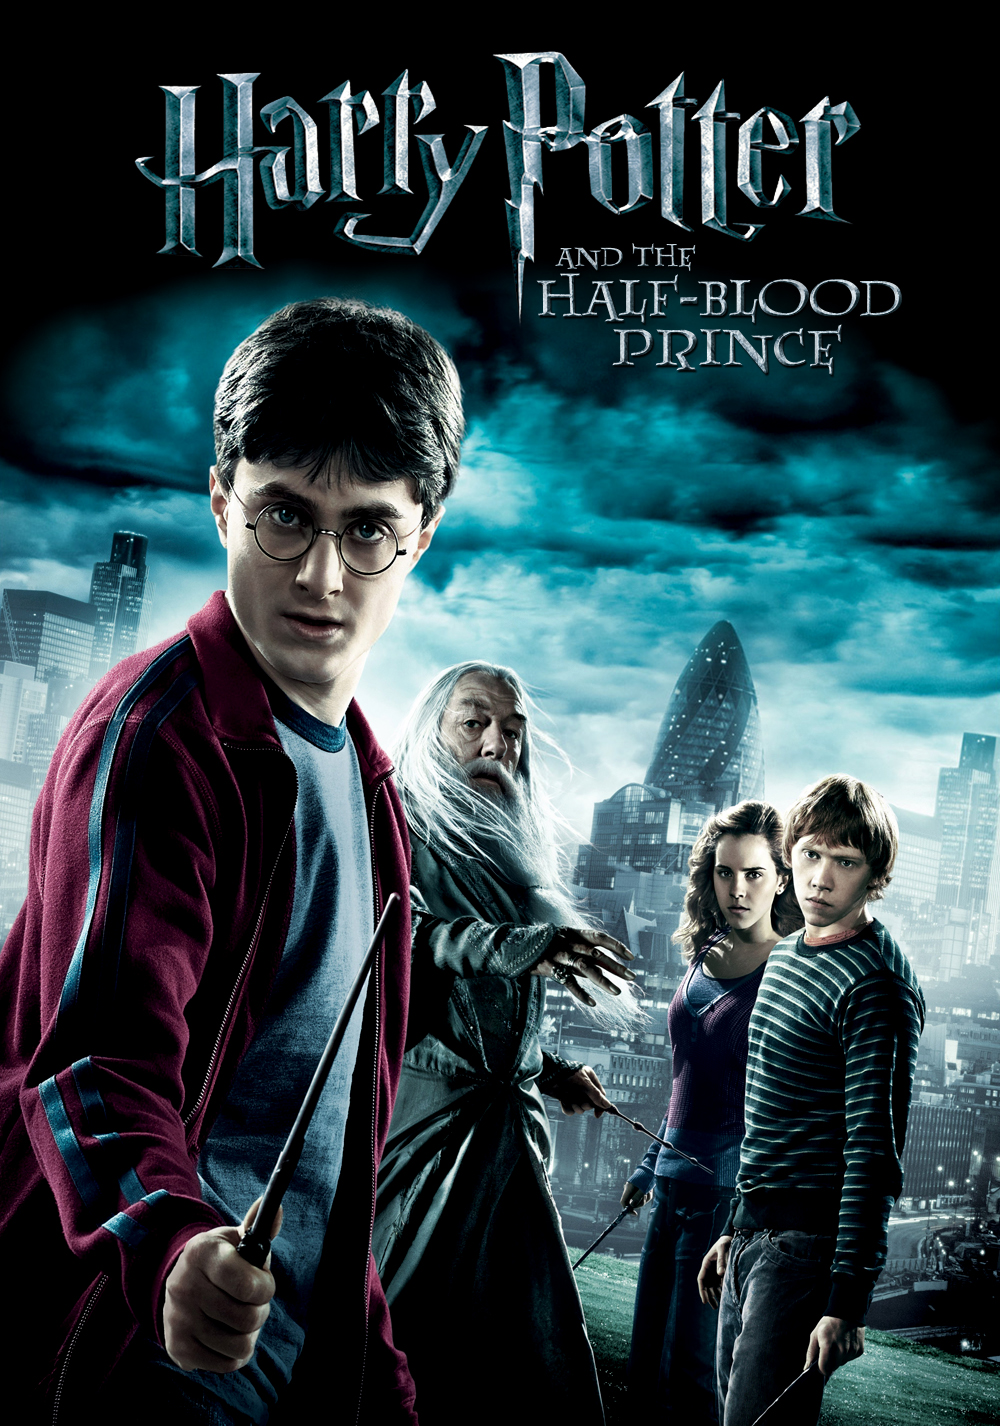 harry-potter-and-the-half-blood-prince-555e48bd050ae.jpg